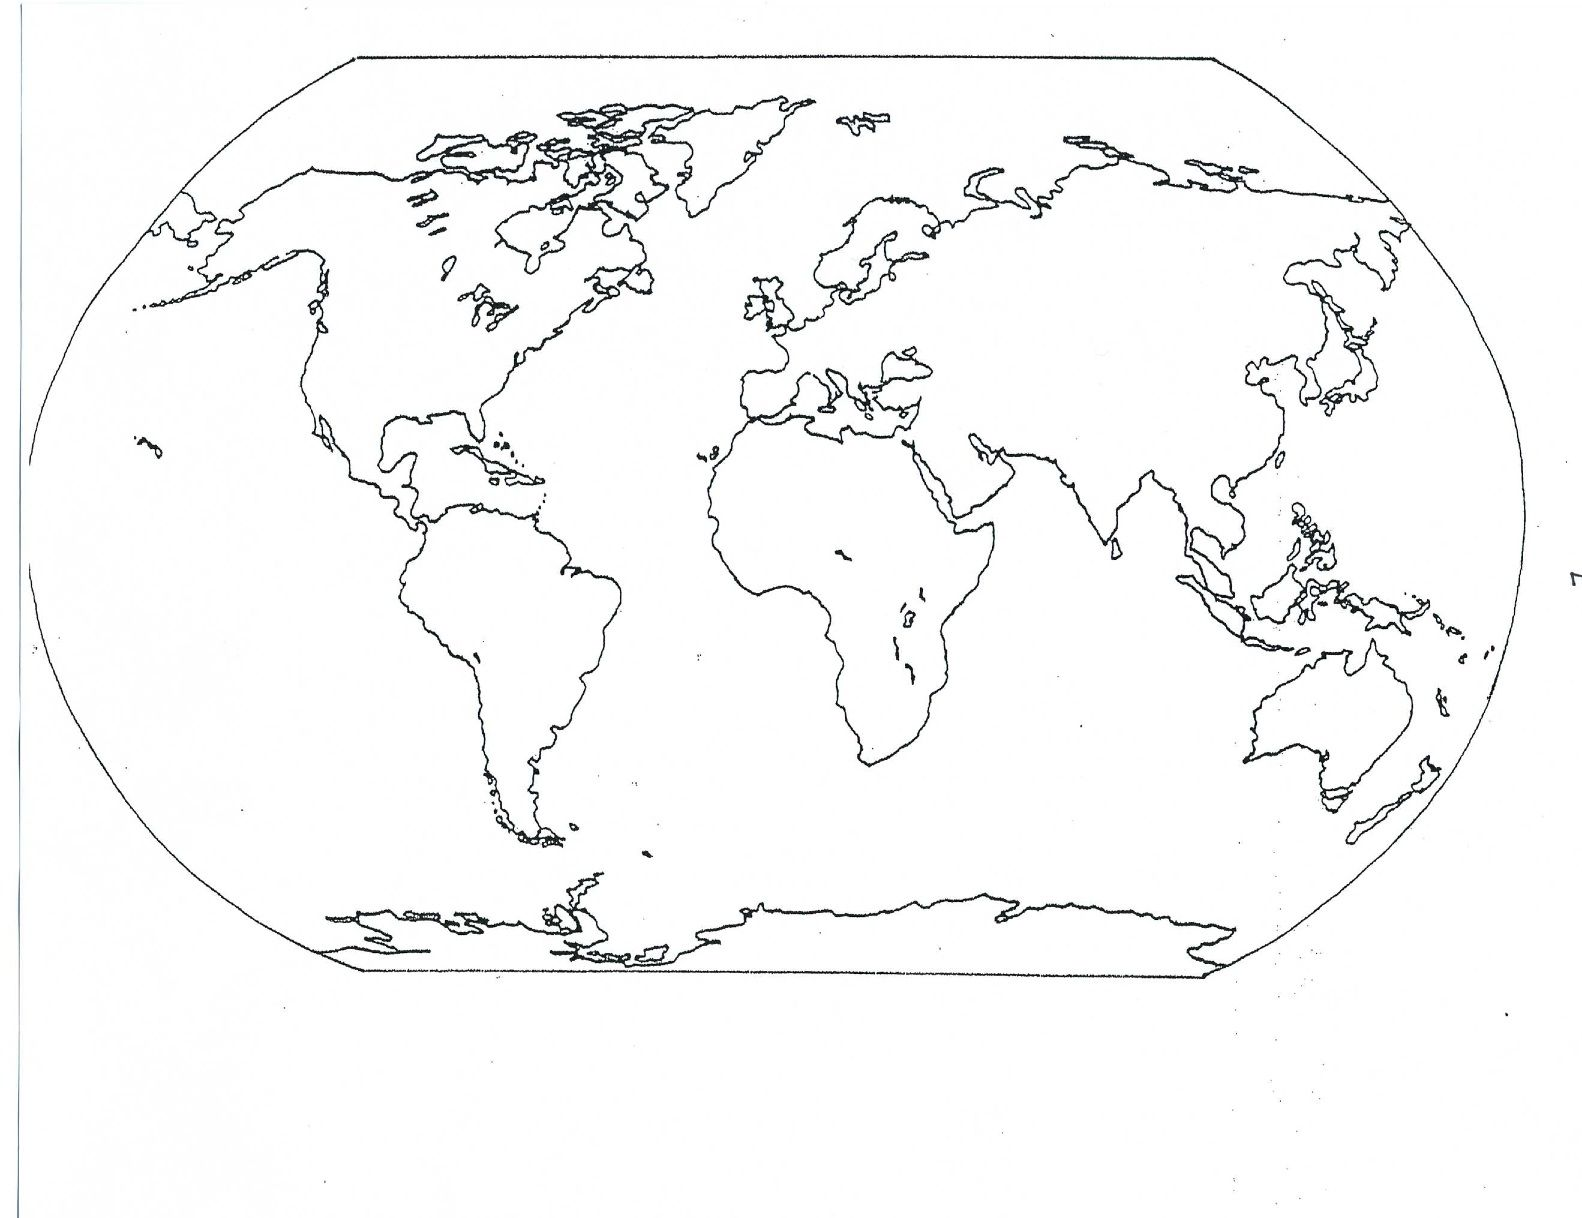 Blank Seven Continents Map Mr Guerrieros Blog Blank And Filled In